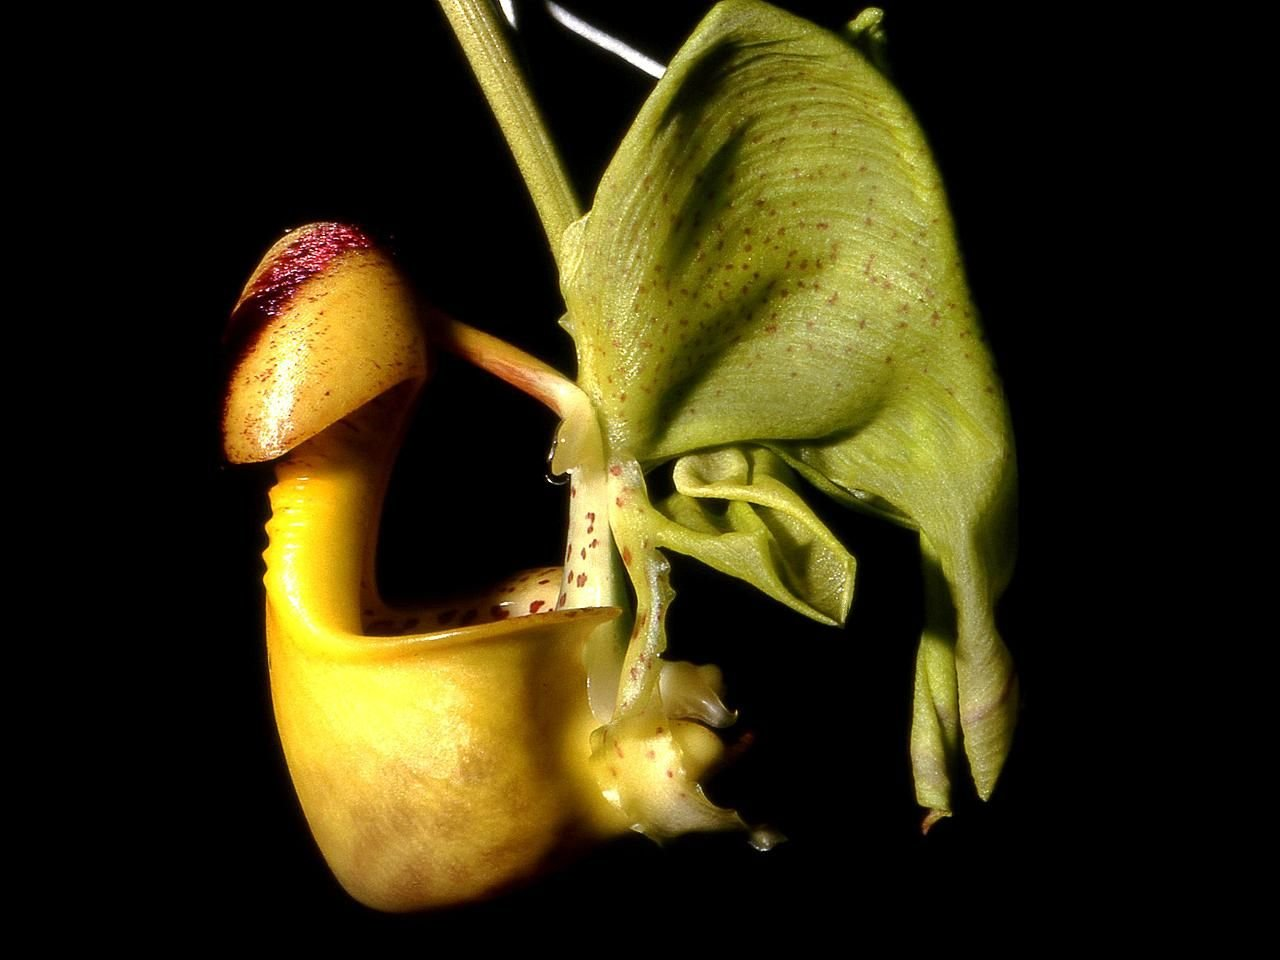 - Coryanthes macrantha